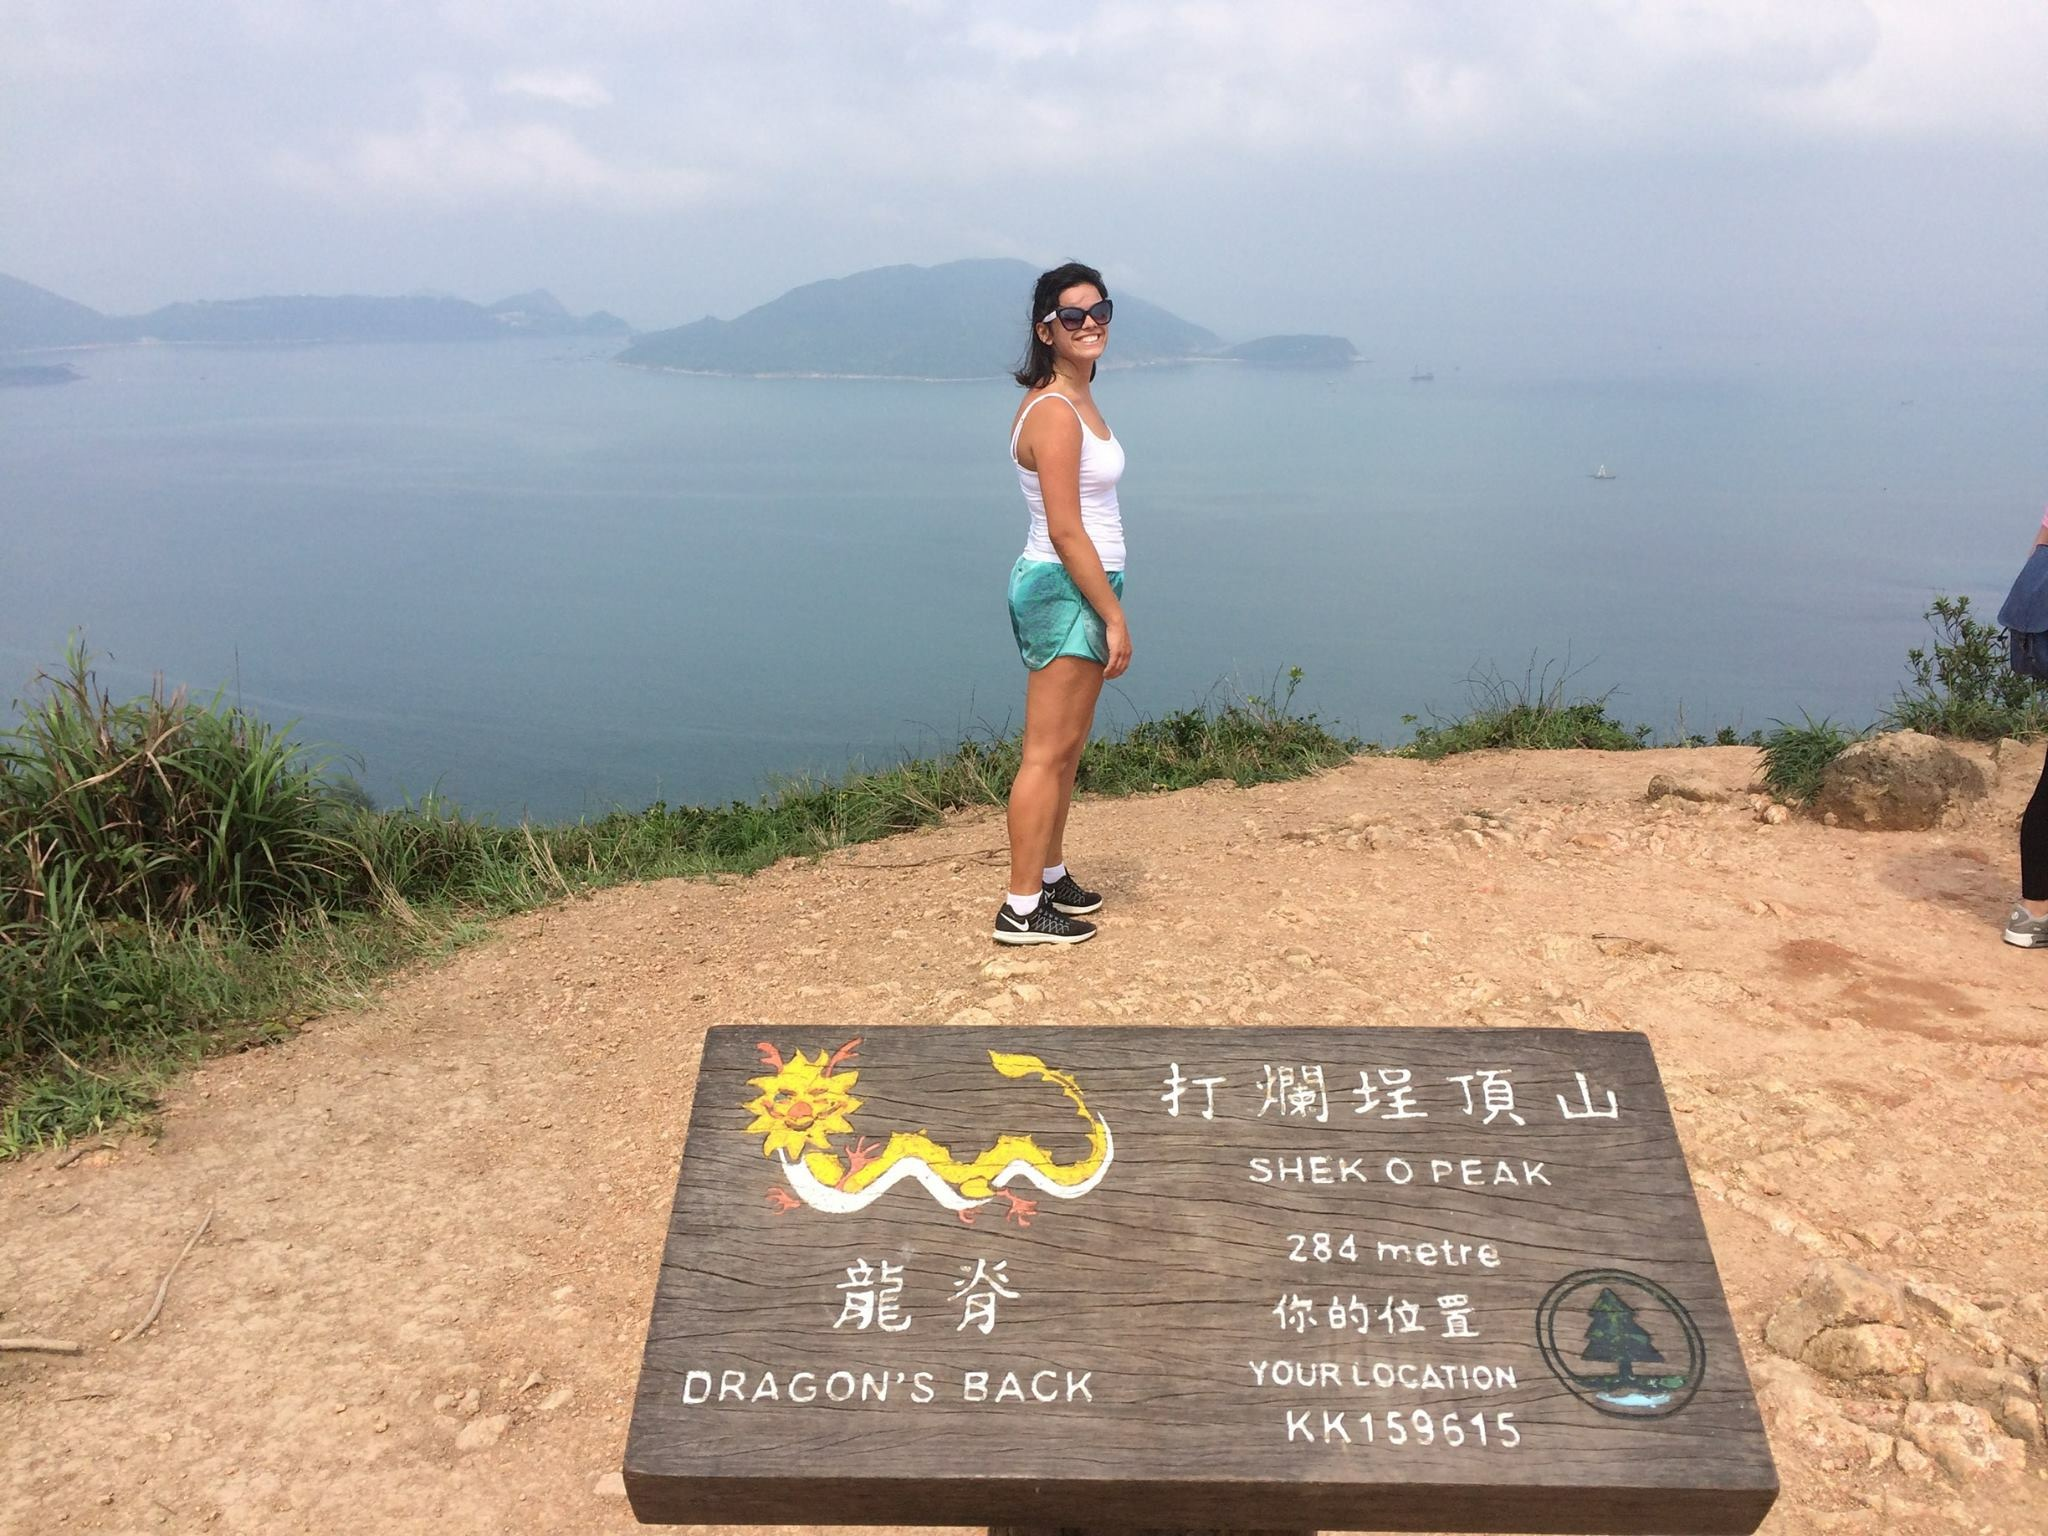 Dragon's Back Hike